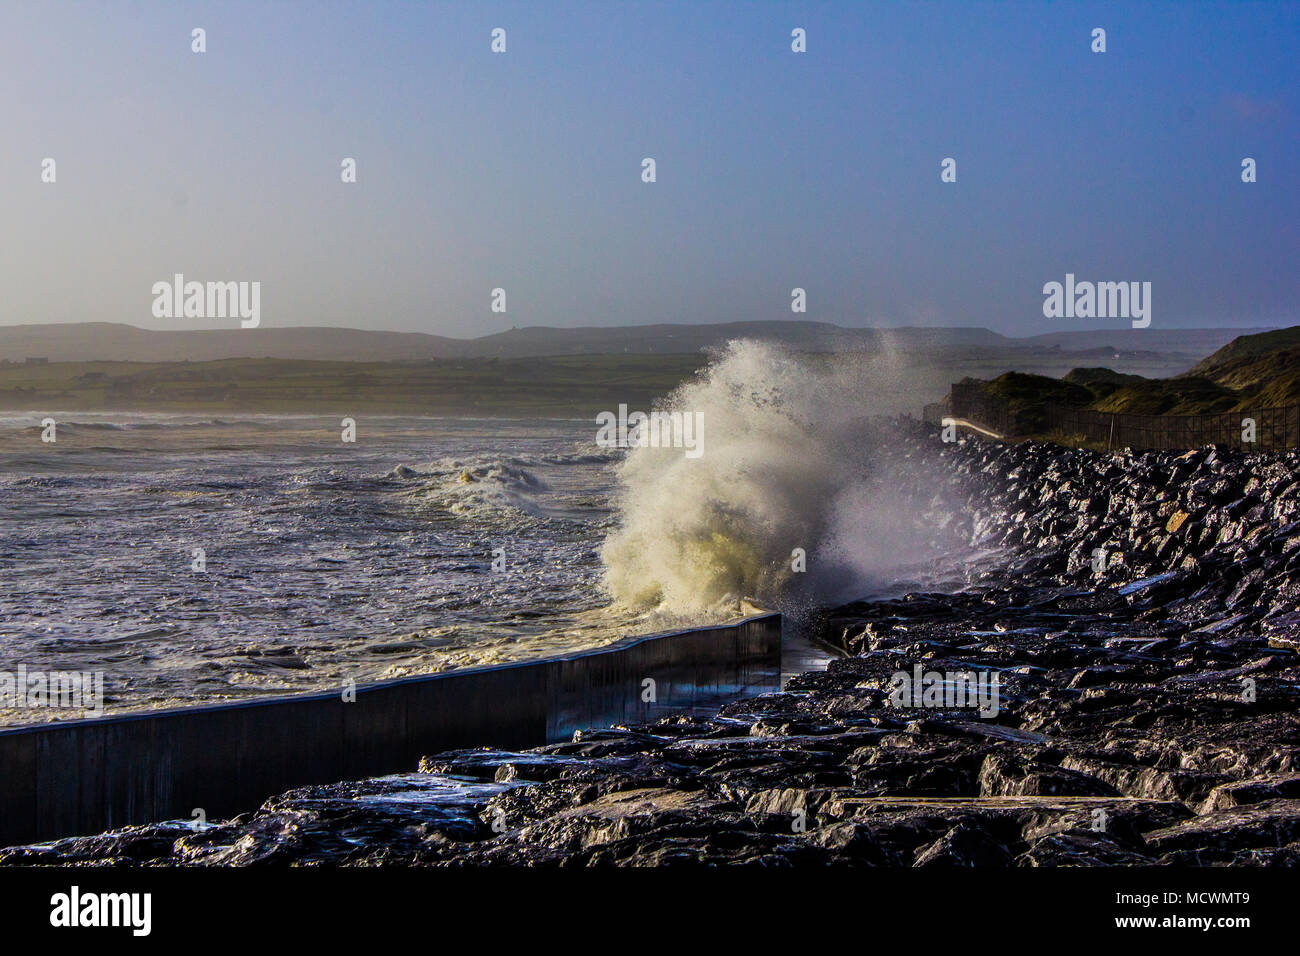 Wave crashing into wall at Lahinch beach during high tide - Stock Image